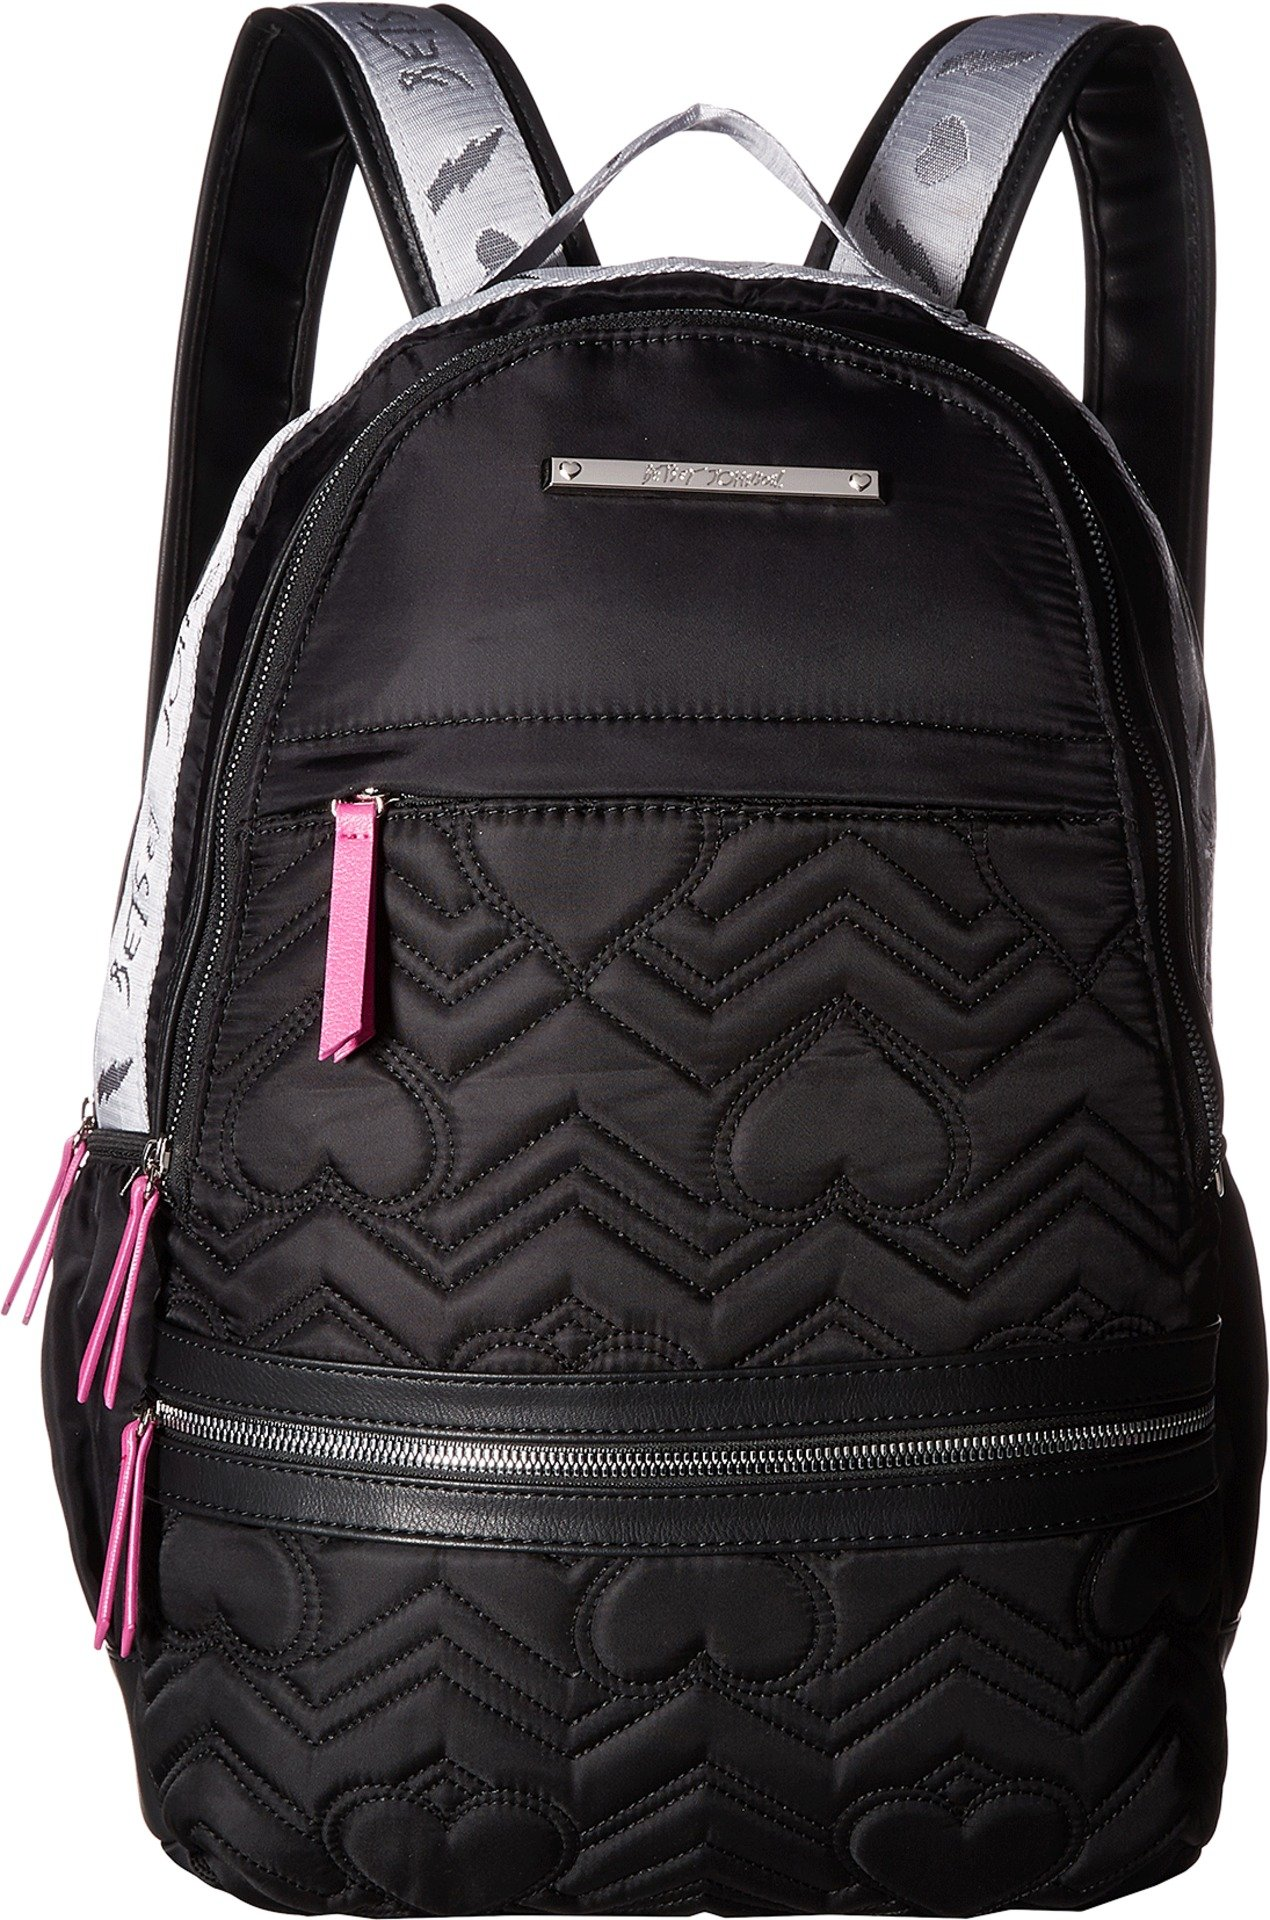 Betsey Johnson Women's Sporty Backpack Black/Fuchsia One Size